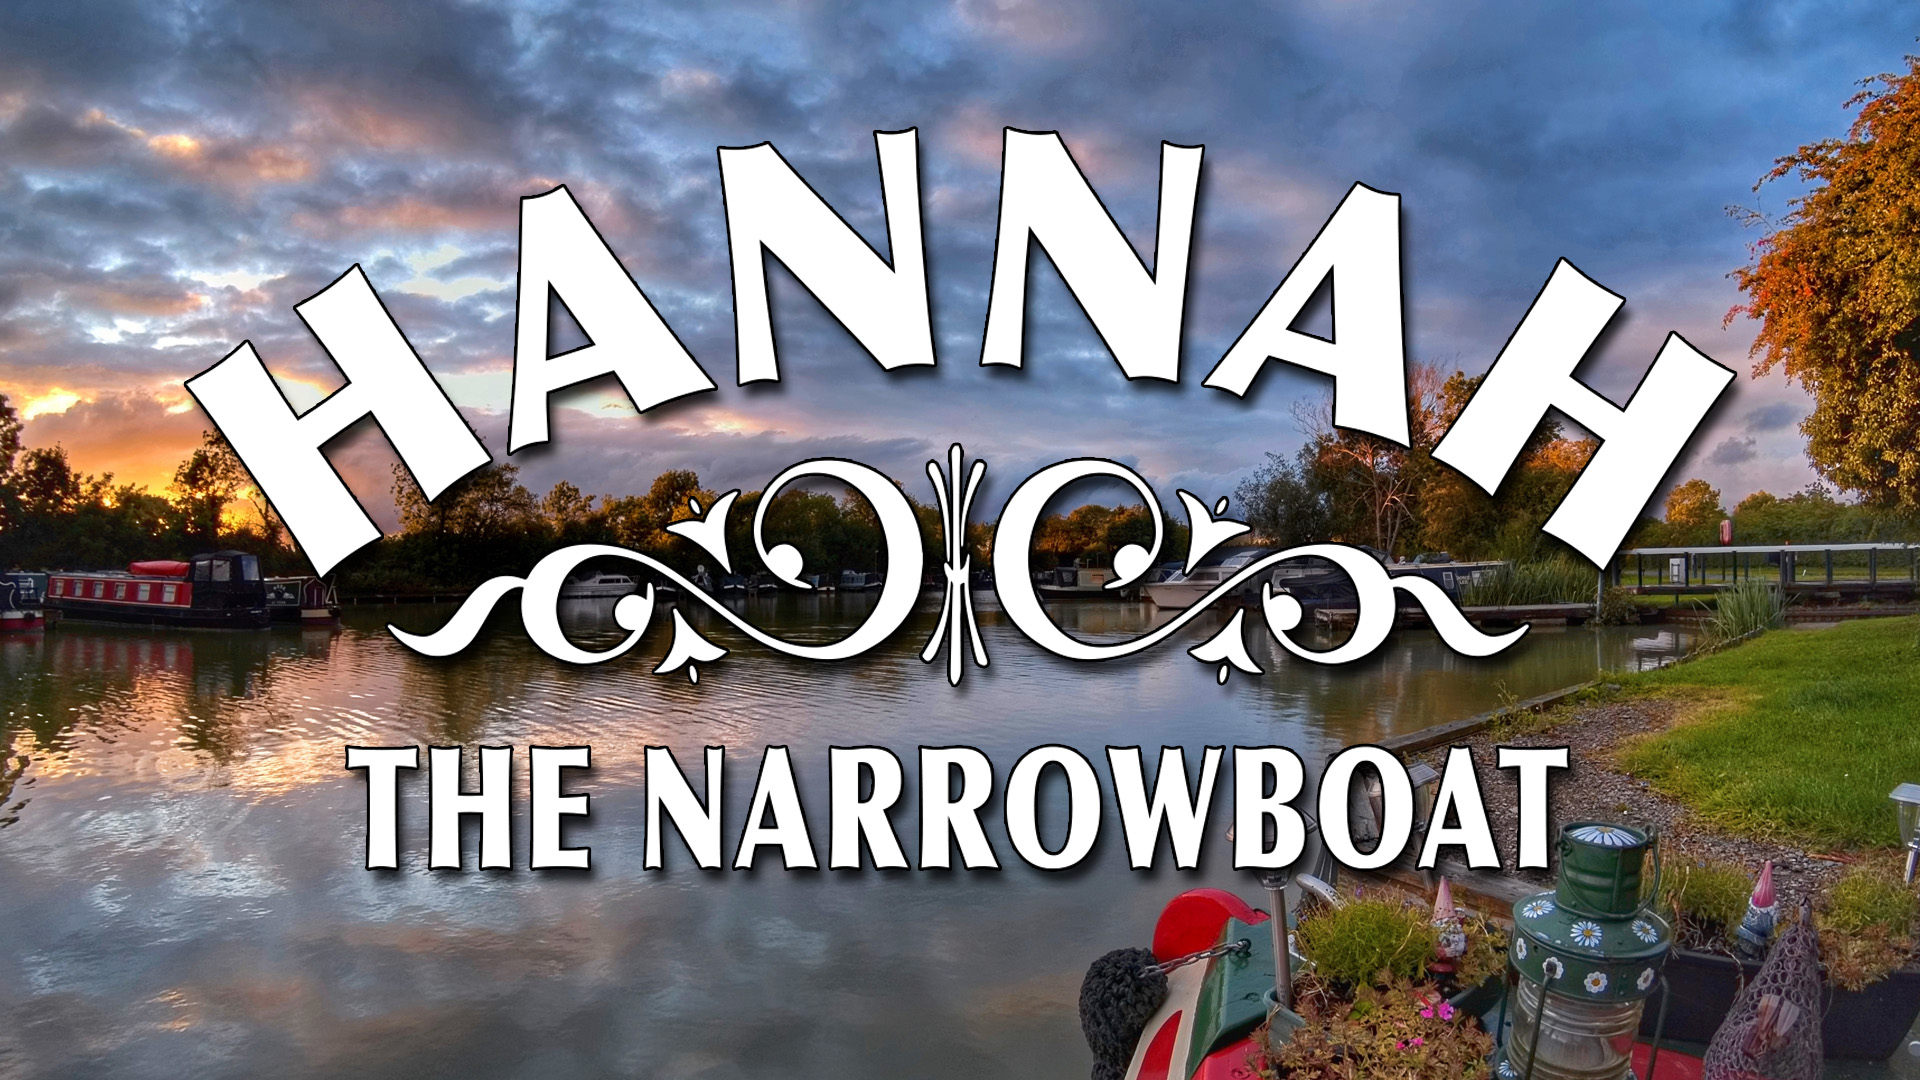 Hannah the Narrowboat YouTube Channel